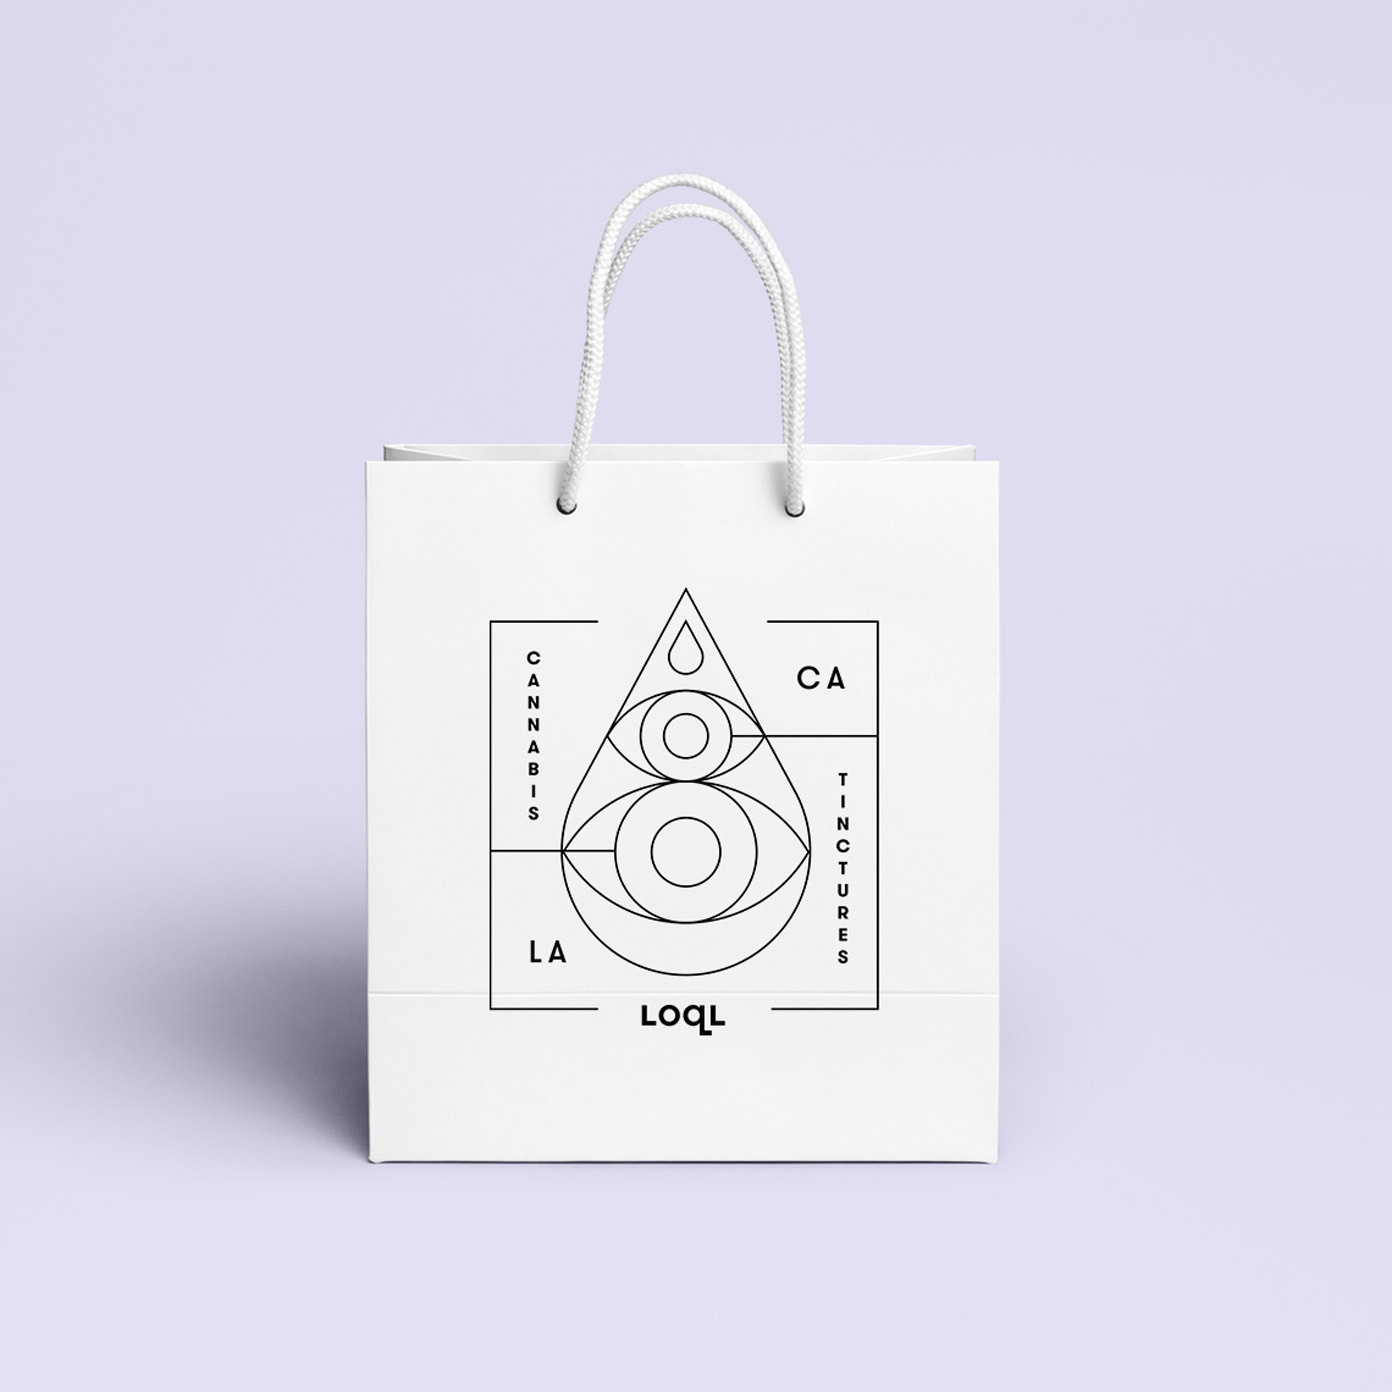 LOQL shopping bag illustration.